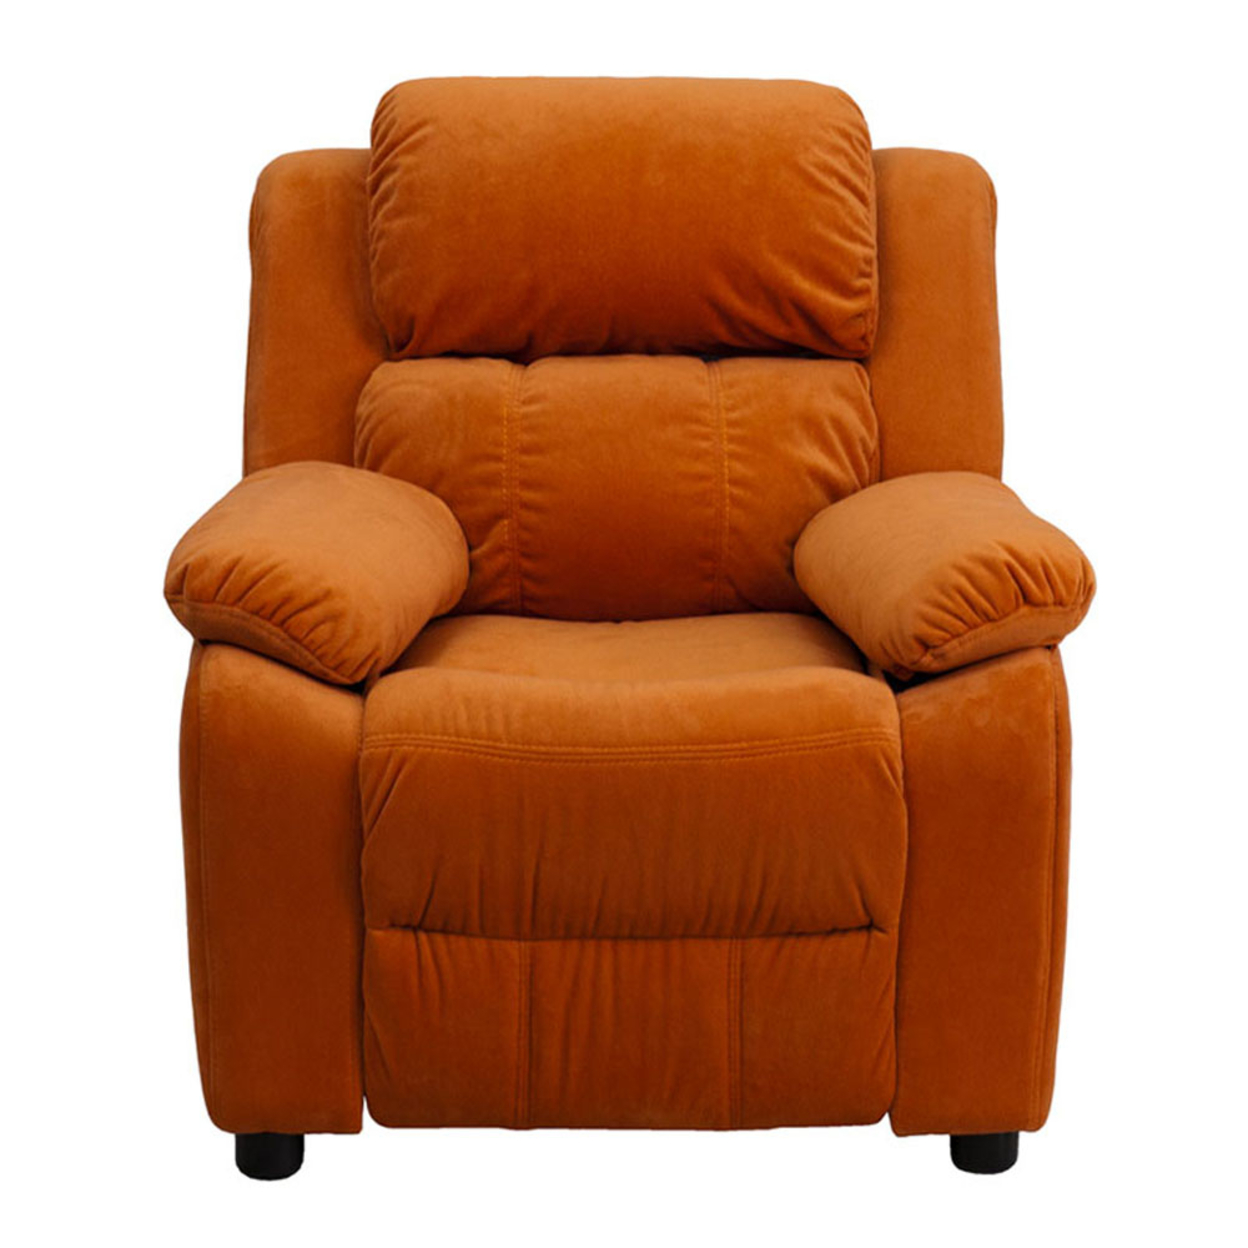 Flash Furniture Deluxe Heavily Padded Contemporary Orange Microfiber Kids Recliner with Storage Arms [863-Bt-7985-Kid-Mic-Org-Gg] 59e46013e224613cbd3843a0